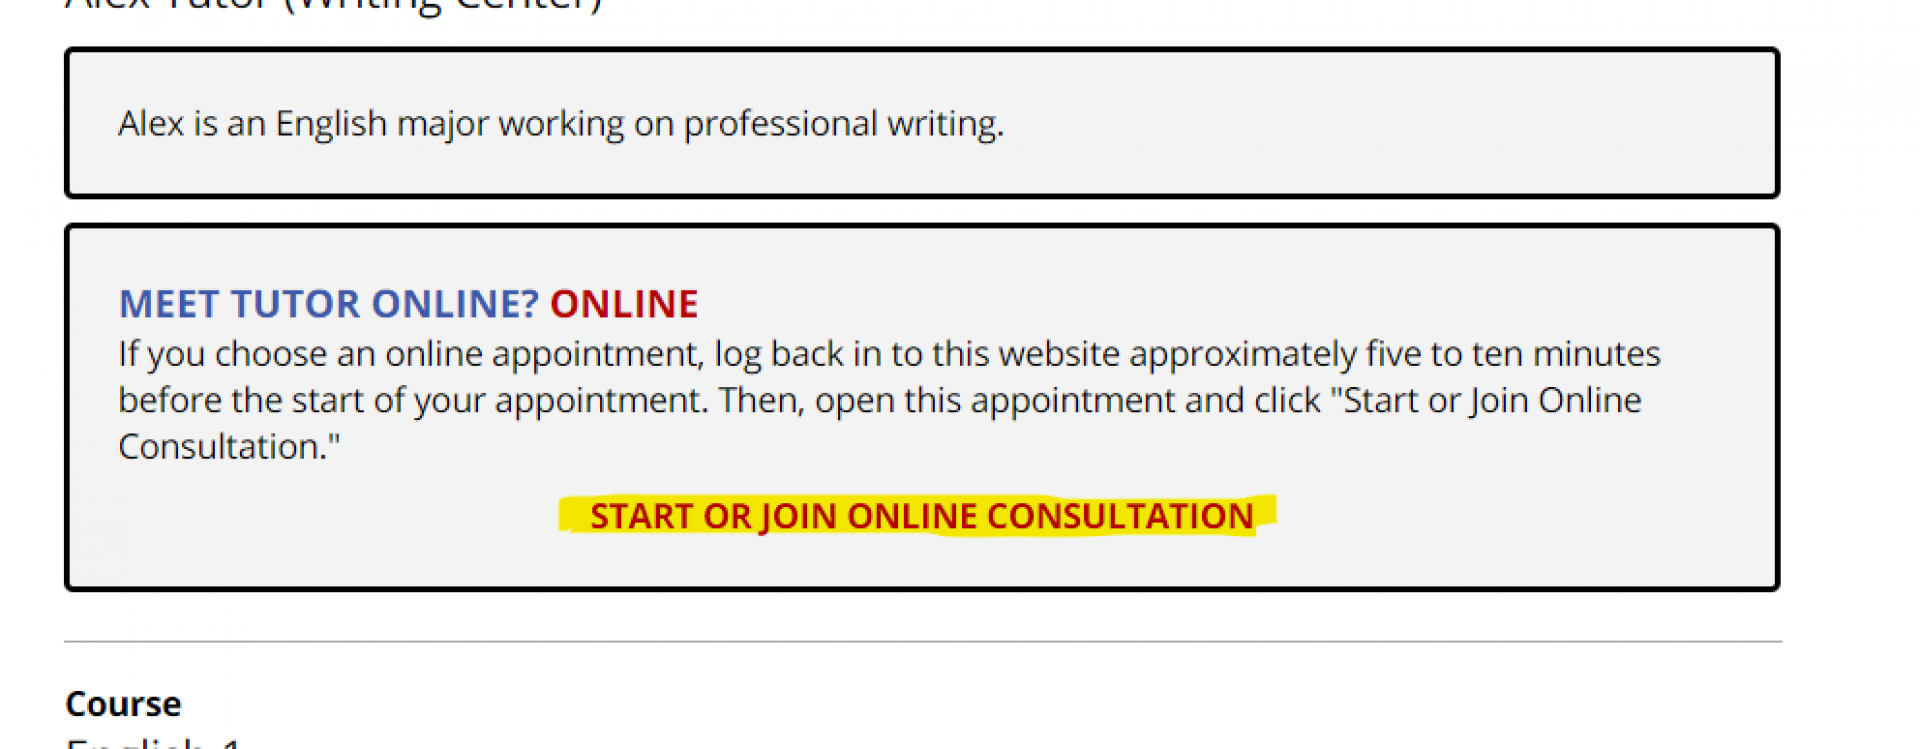 """An image of an appointment for with the link, """"Start or Join Online Consultation,"""" highlighted."""